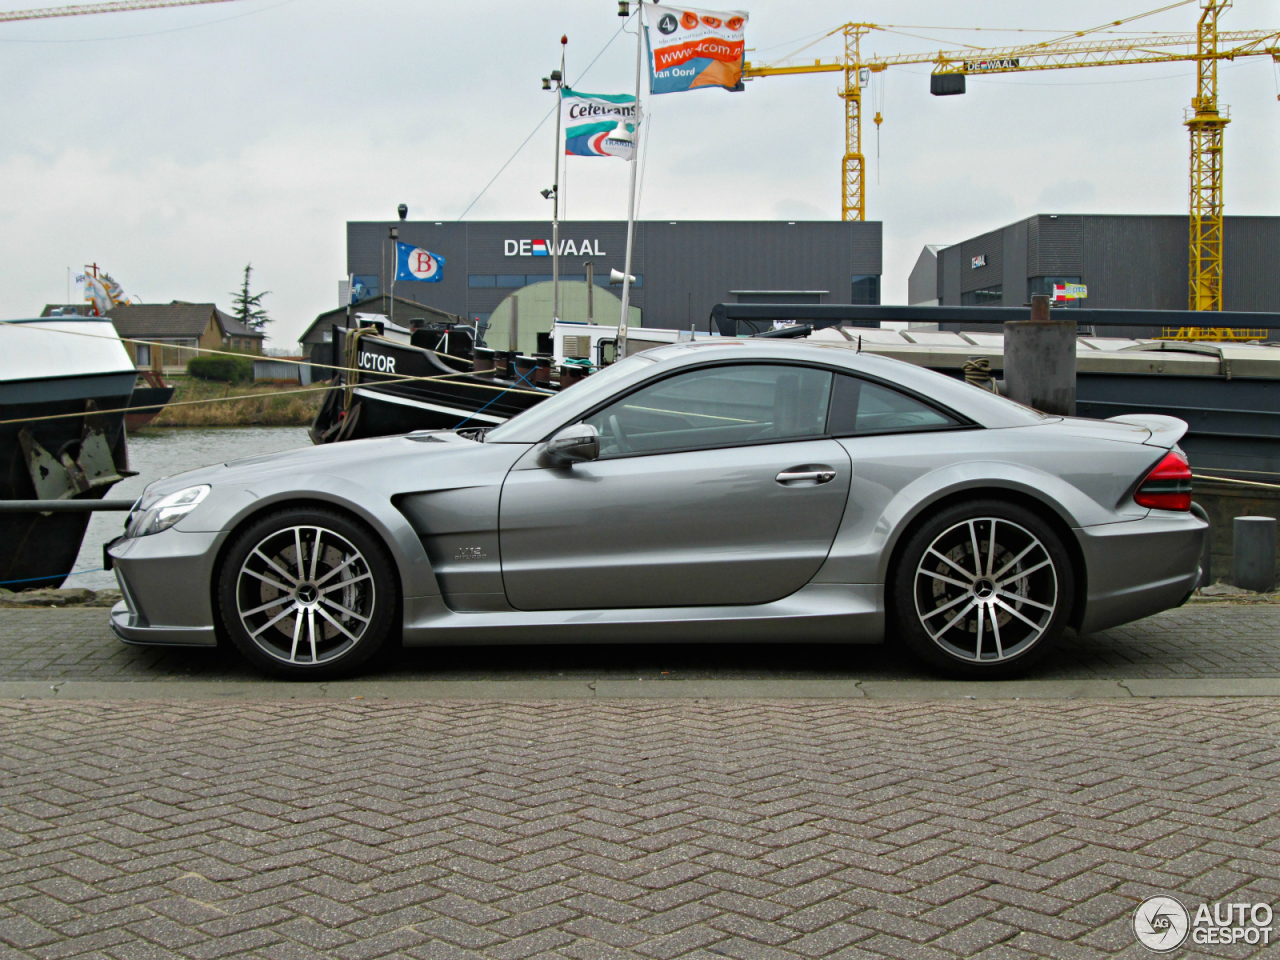 Mercedes benz sl 65 amg black series 18 december 2015 for Mercedes benz sl65 amg black series for sale